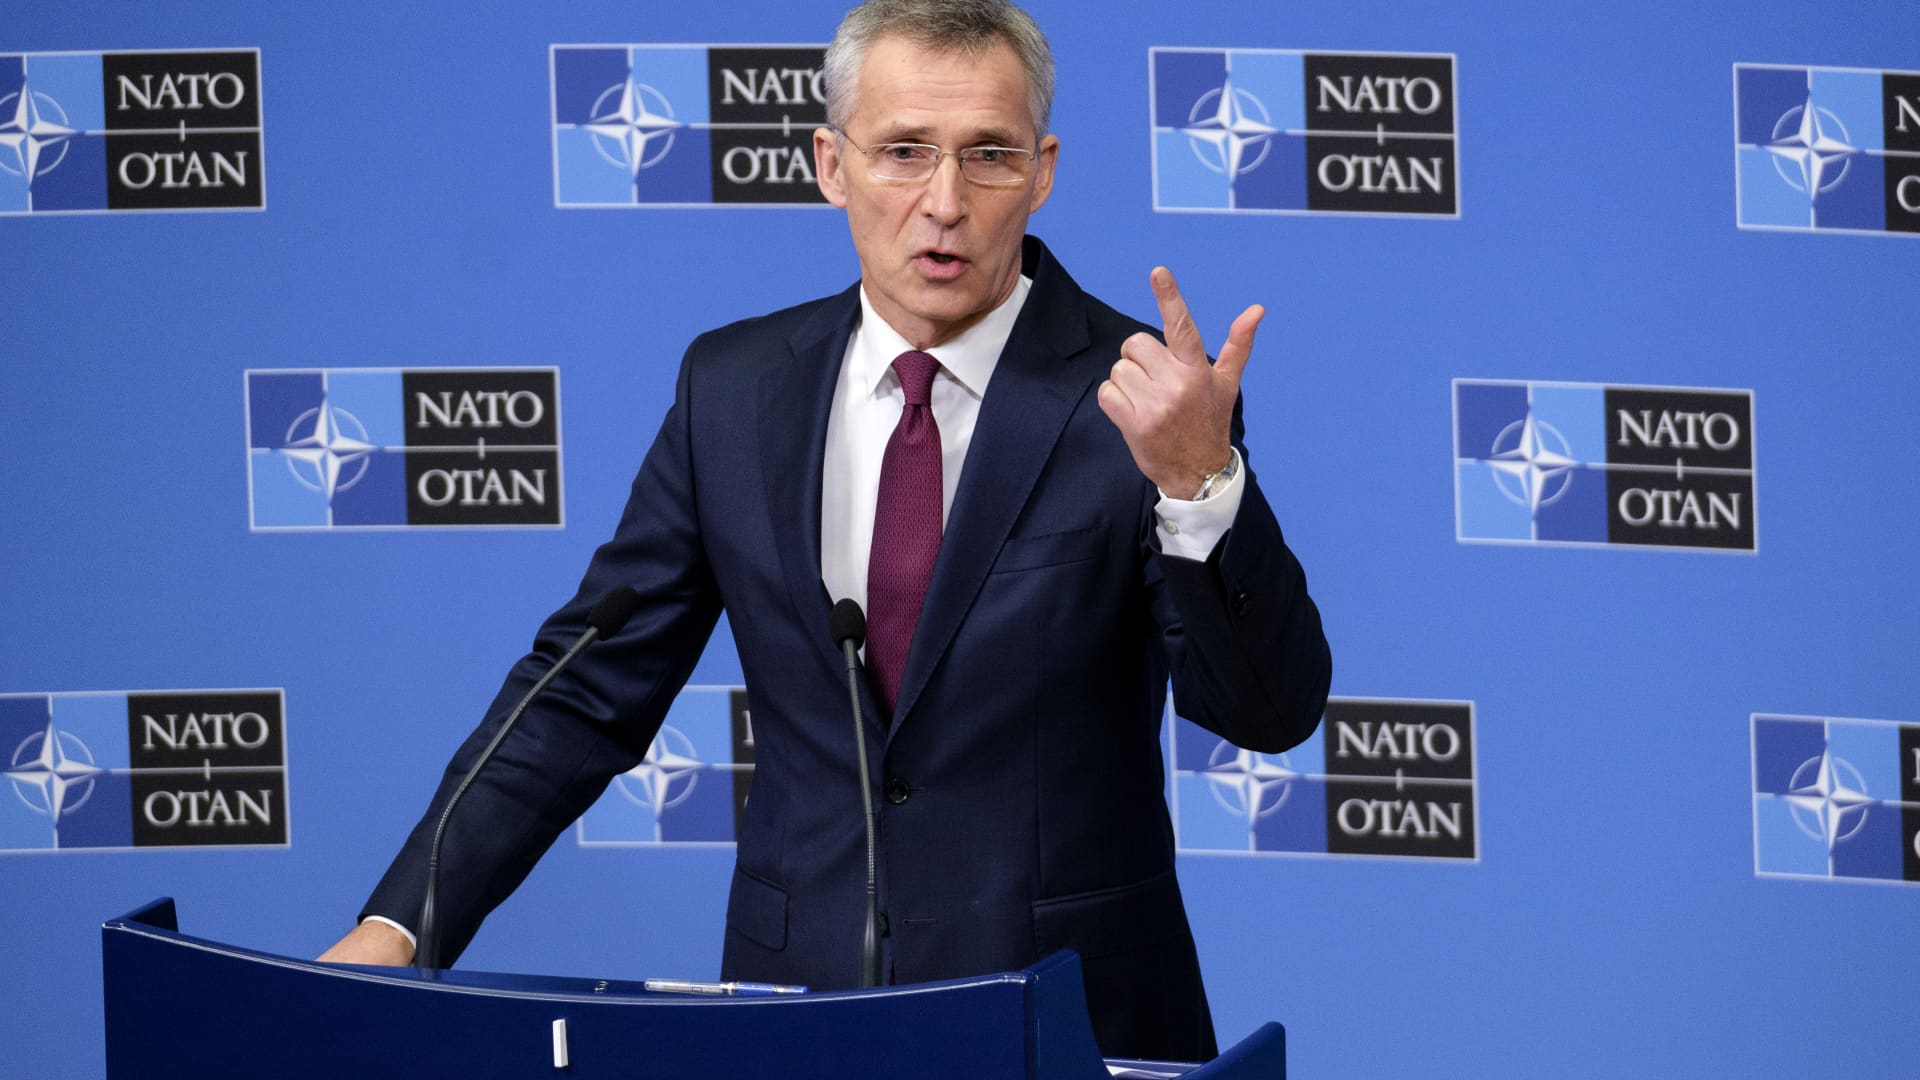 Jens Stoltenberg, 13th Secretary General of the North Atlantic Treaty Organization, is talks to the media at the NATO headquarter on February 11, 2020 in Brussels, Belgium.